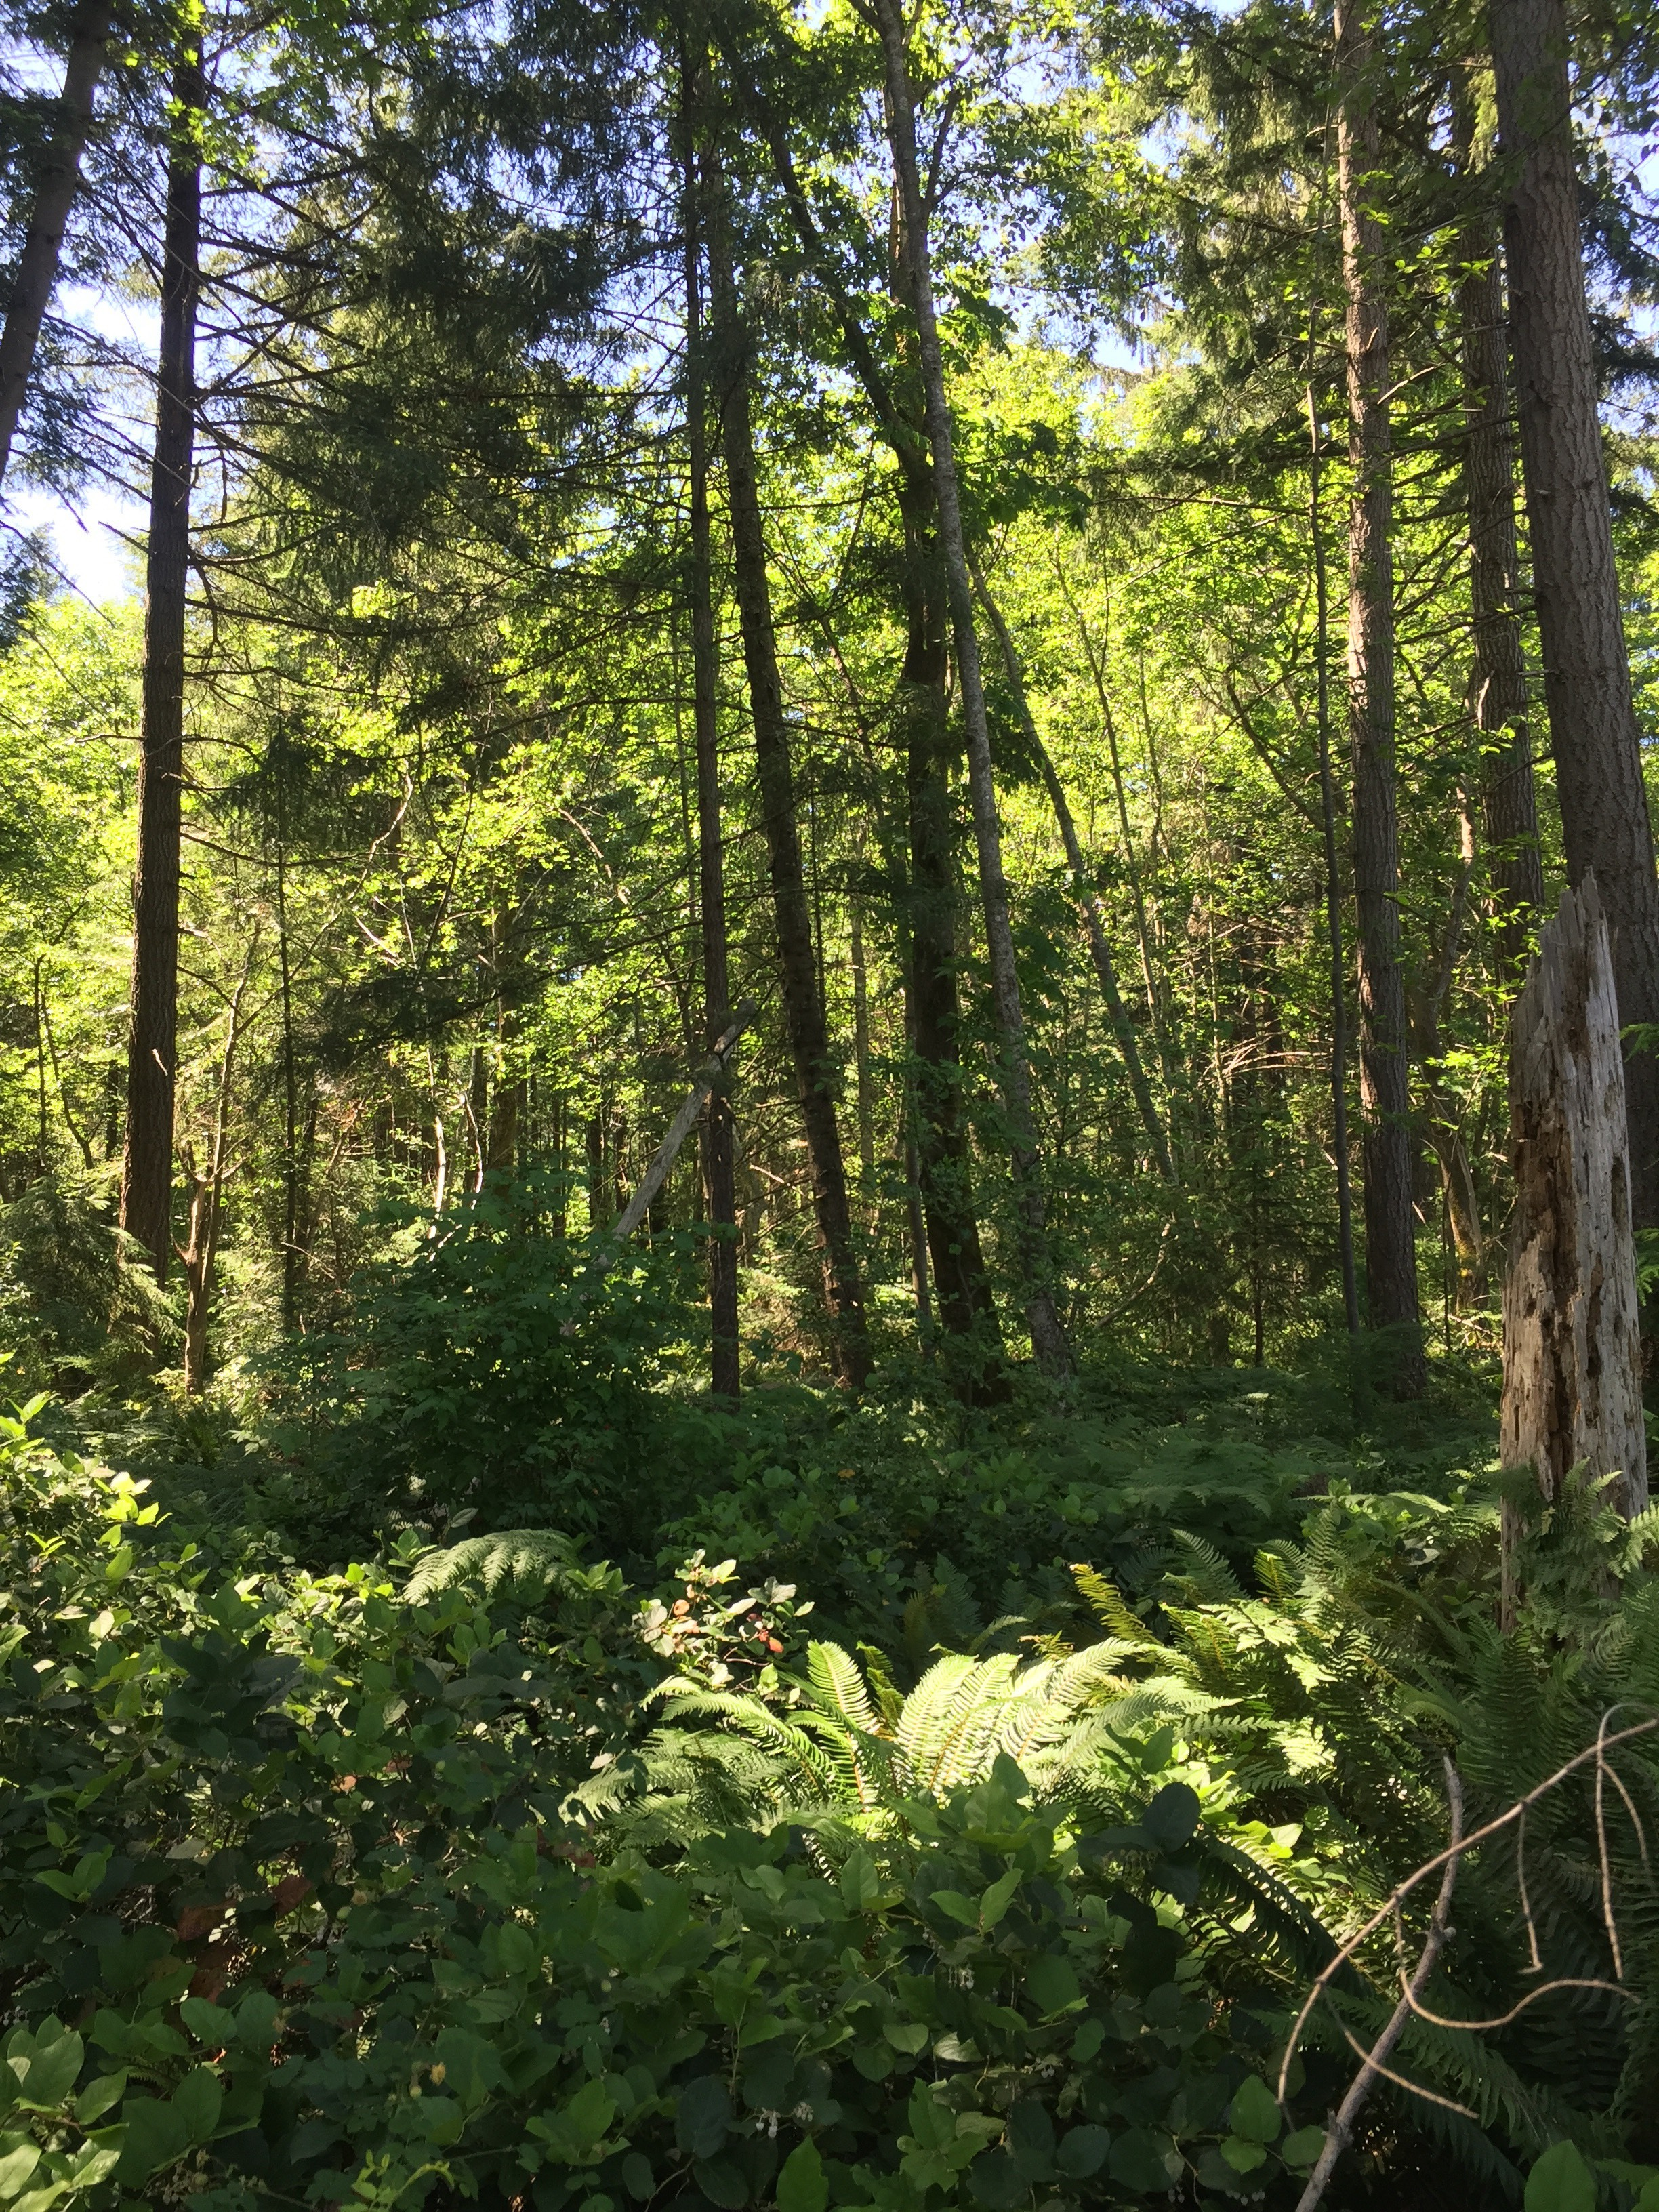 The Lannan Forest in Comox.